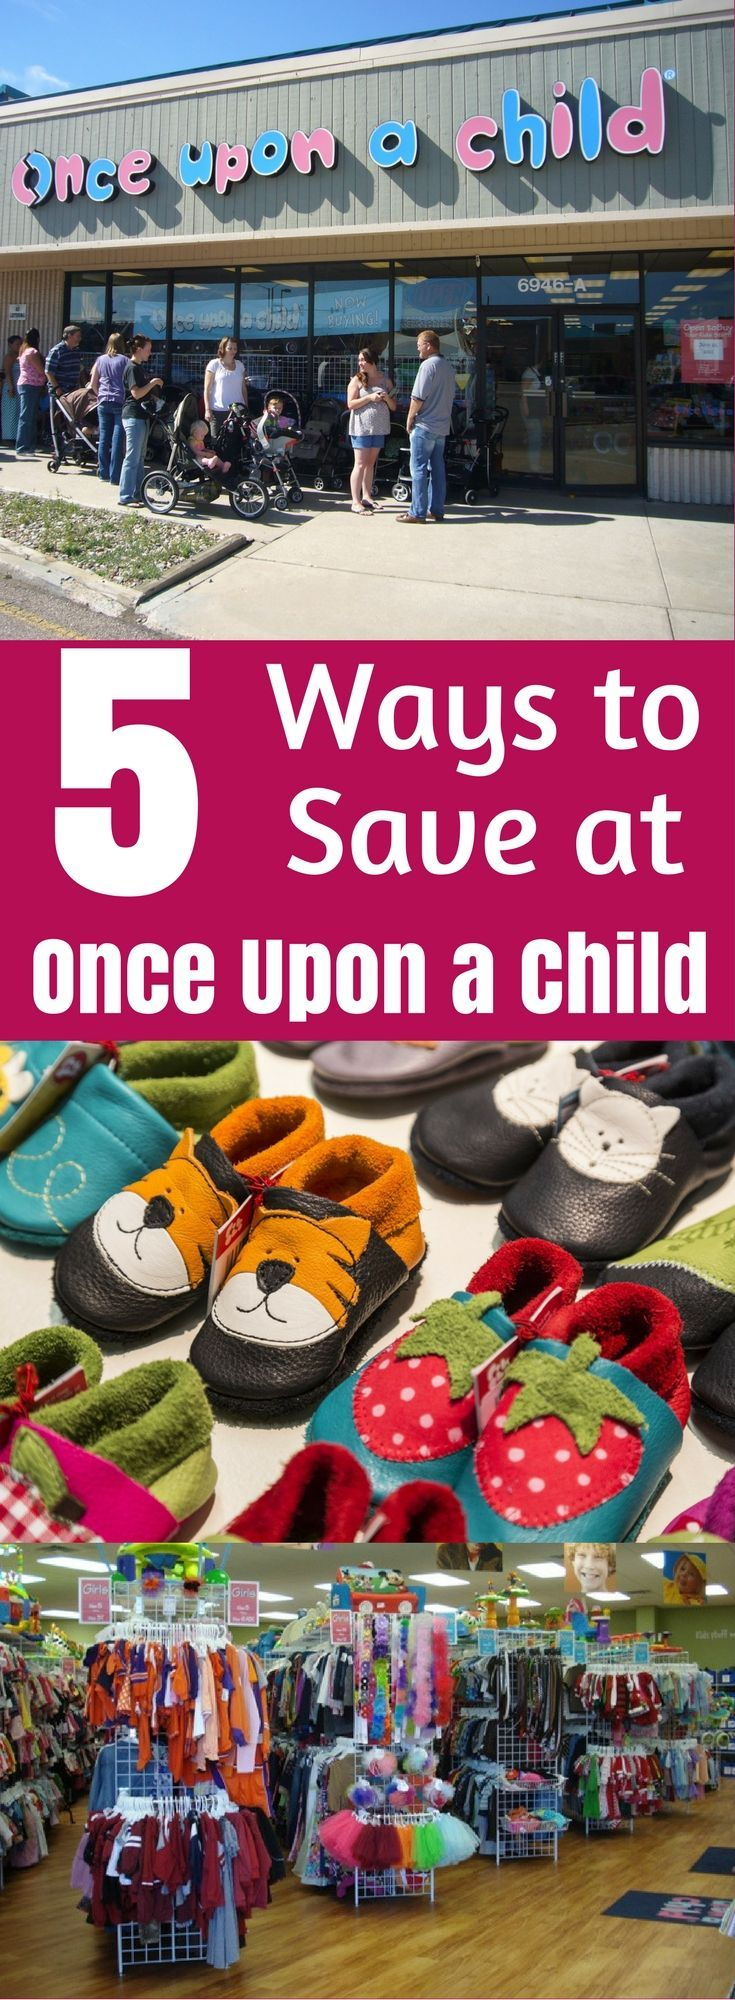 5 Ways to Save at Once Upon a Child